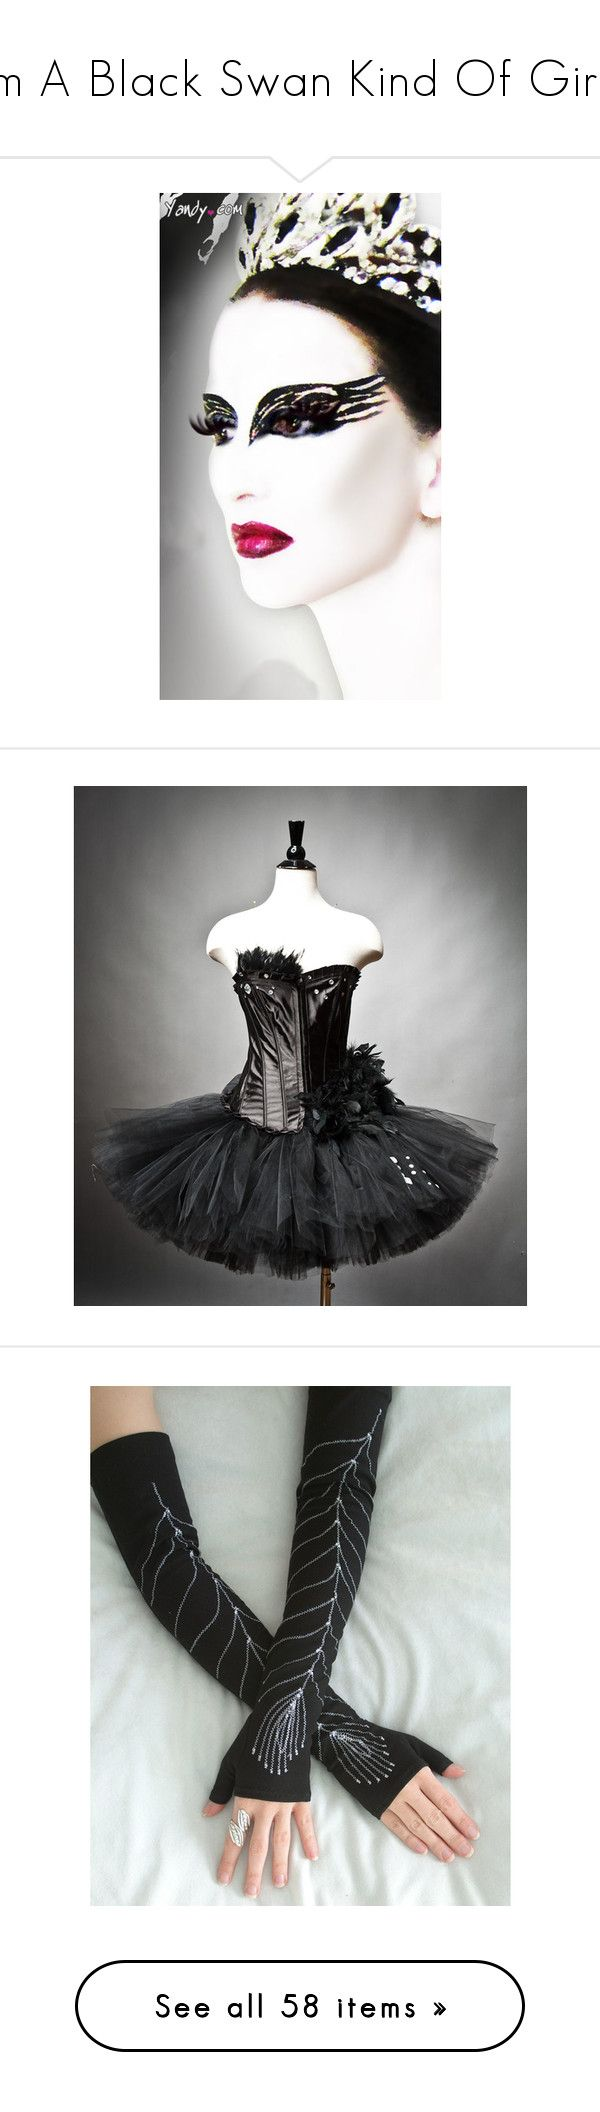 """""""Im A Black Swan Kind Of Girl;"""" by sarratori ❤ liked on Polyvore featuring backgrounds, costumes, dresses, dance, costume, vestidos, feather costume, hook costume, bride halloween costume and black swan costume"""